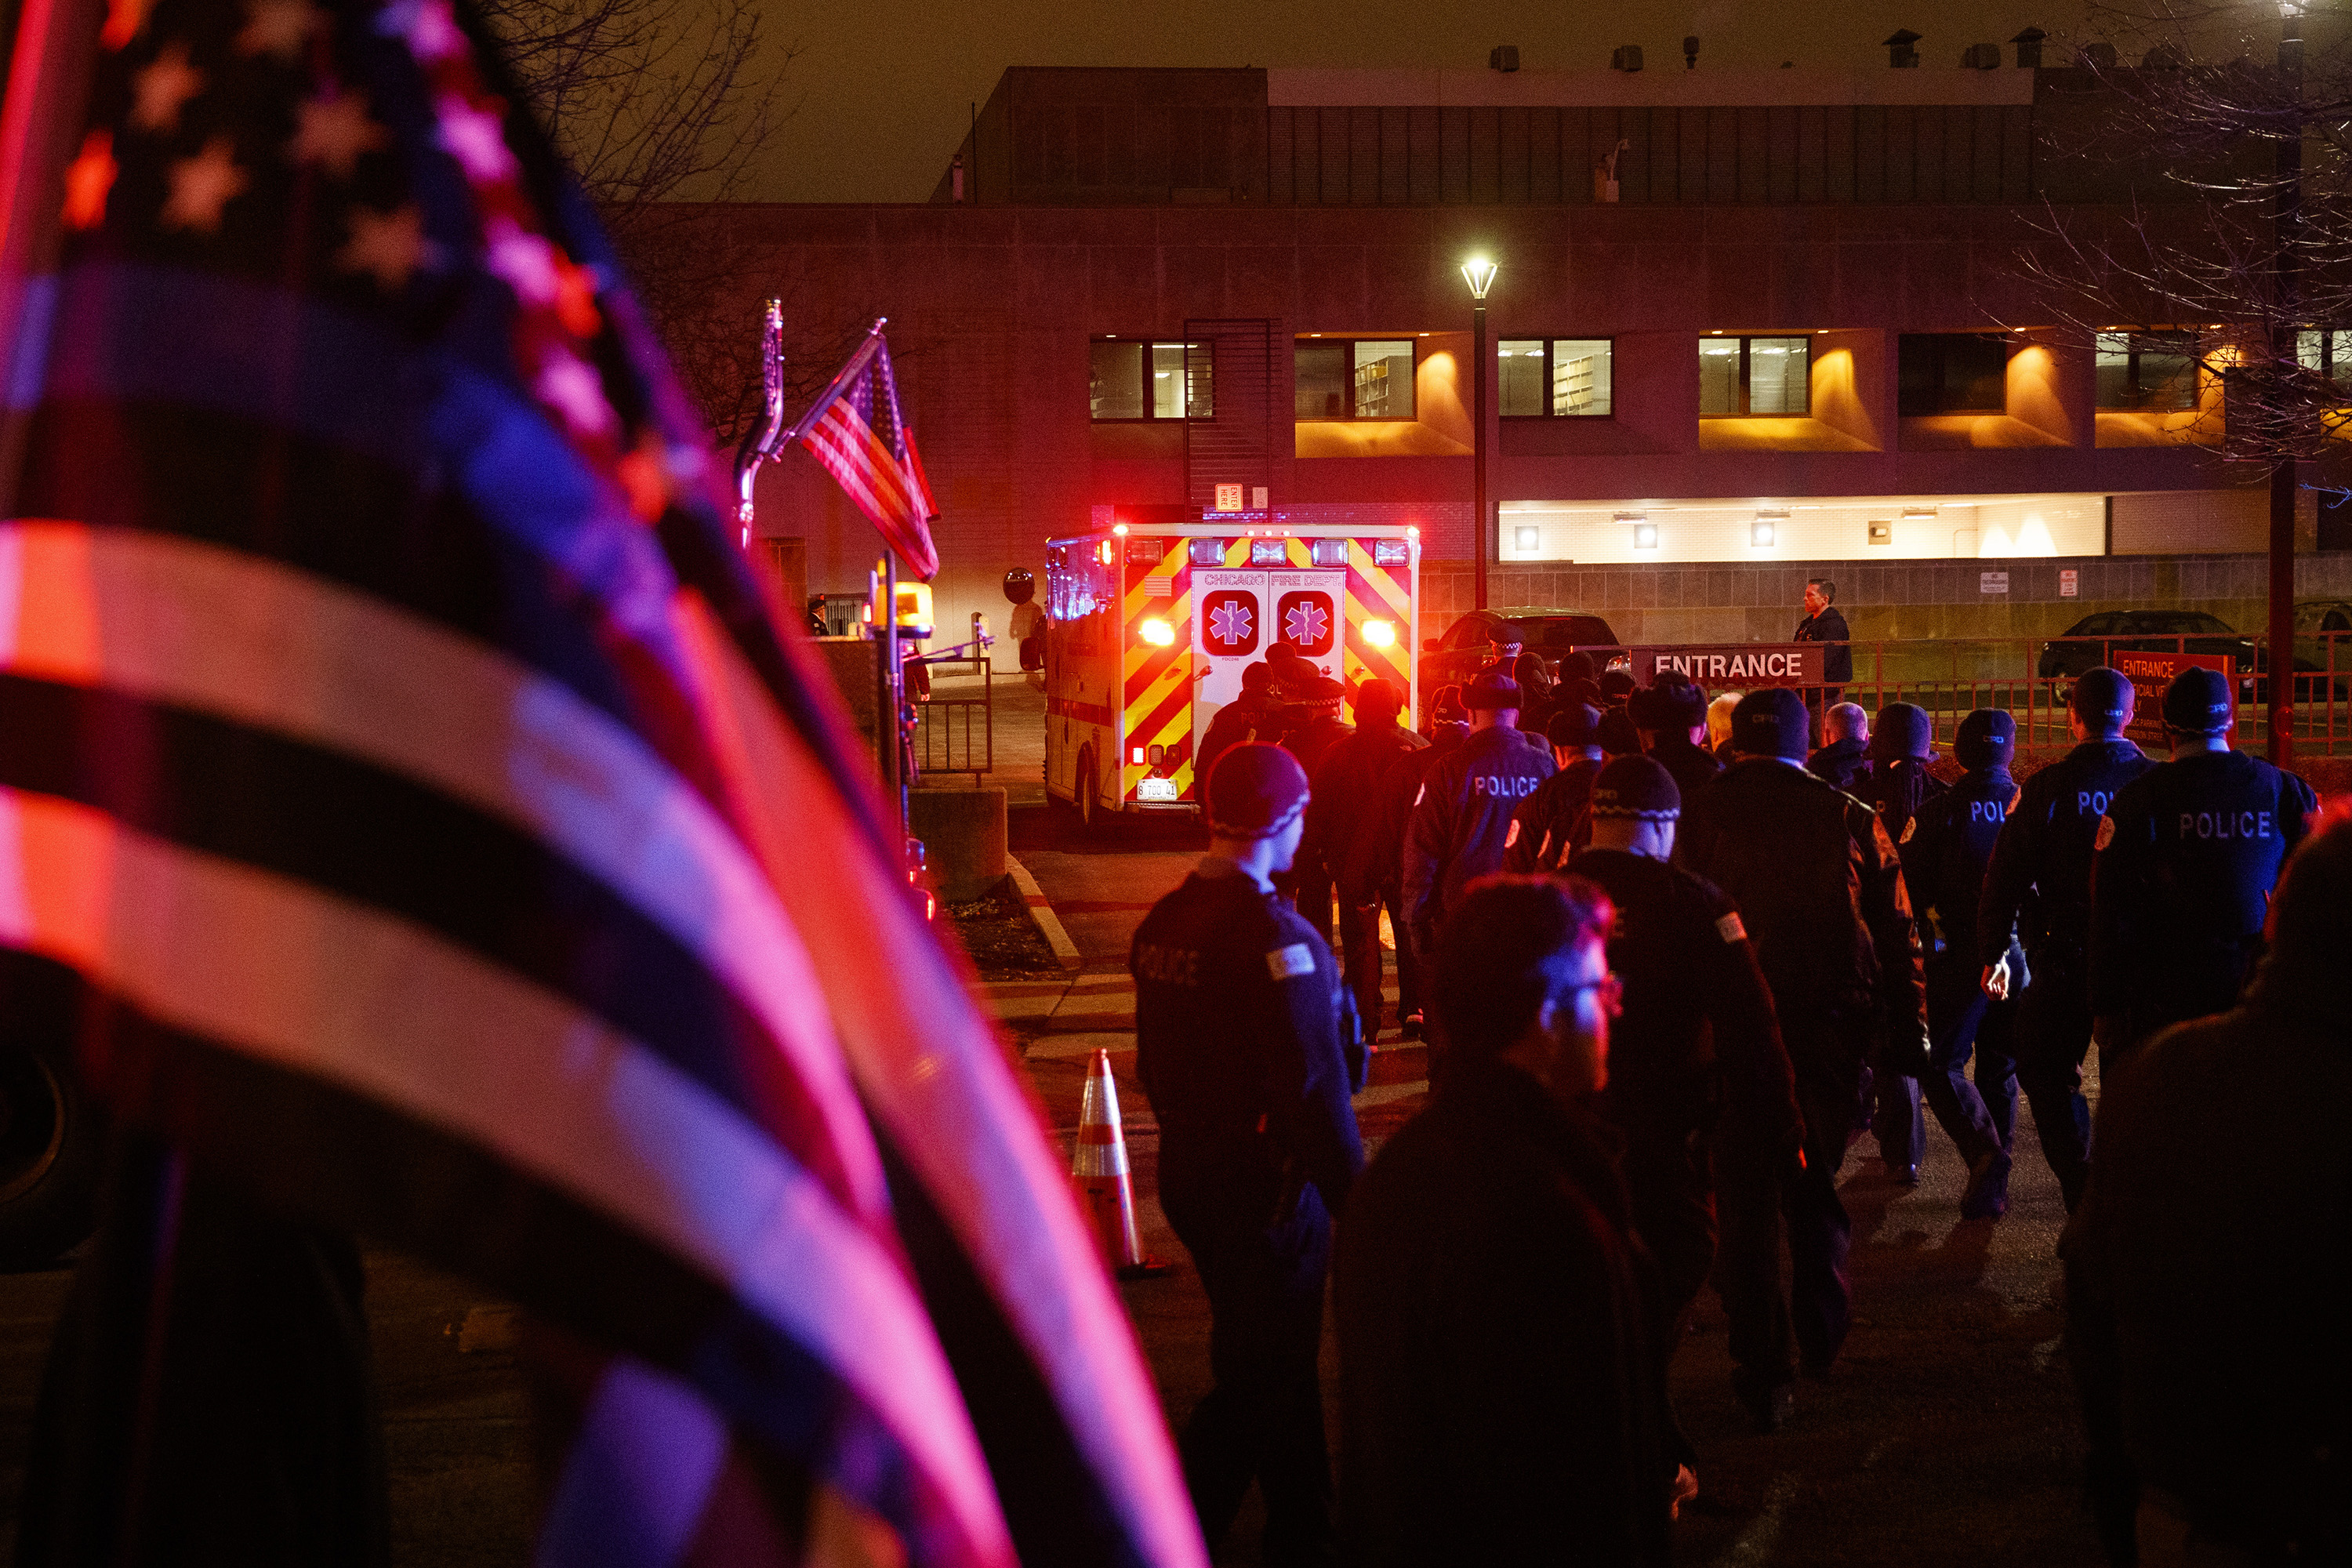 Officers follow an ambulance as it arrives at the medical examiners office carrying the body of a police officer who was killed during a shooting at Mercy Hospital which left four people, including the gunman, dead Monday Nov. 19, 2018 in Chicago. (Armando L. Sanchez/Chicago Tribune/TNS via Getty Images)